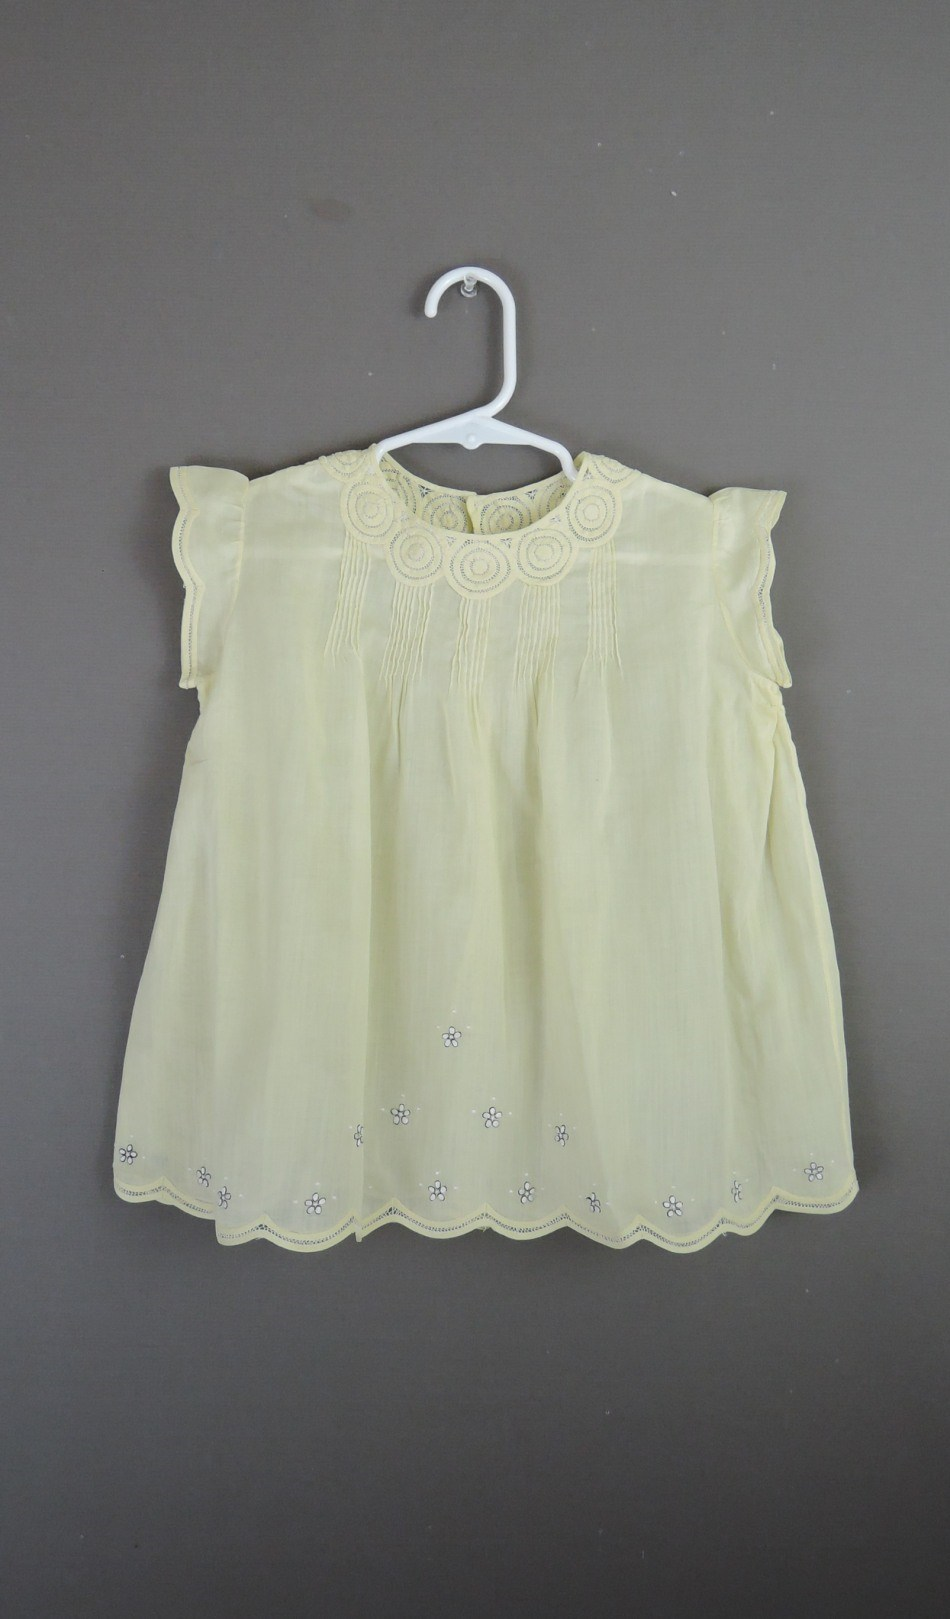 Vintage Yellow Baby Toddler Dress 1930s, 26 inch chest All hand sewn